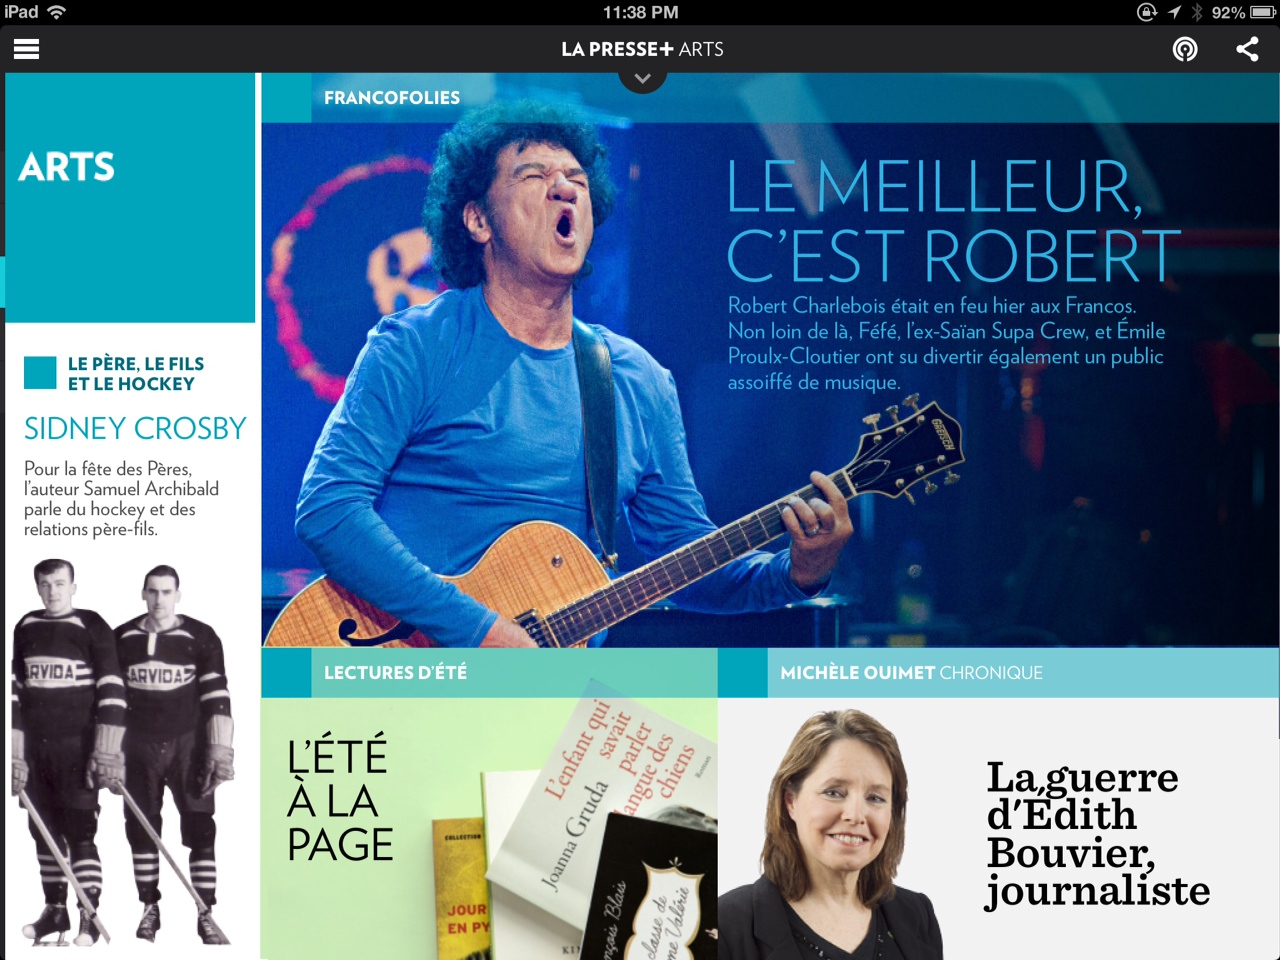 La Presse + Arts :: Robert Charlebois : Photo Anne Gauthier